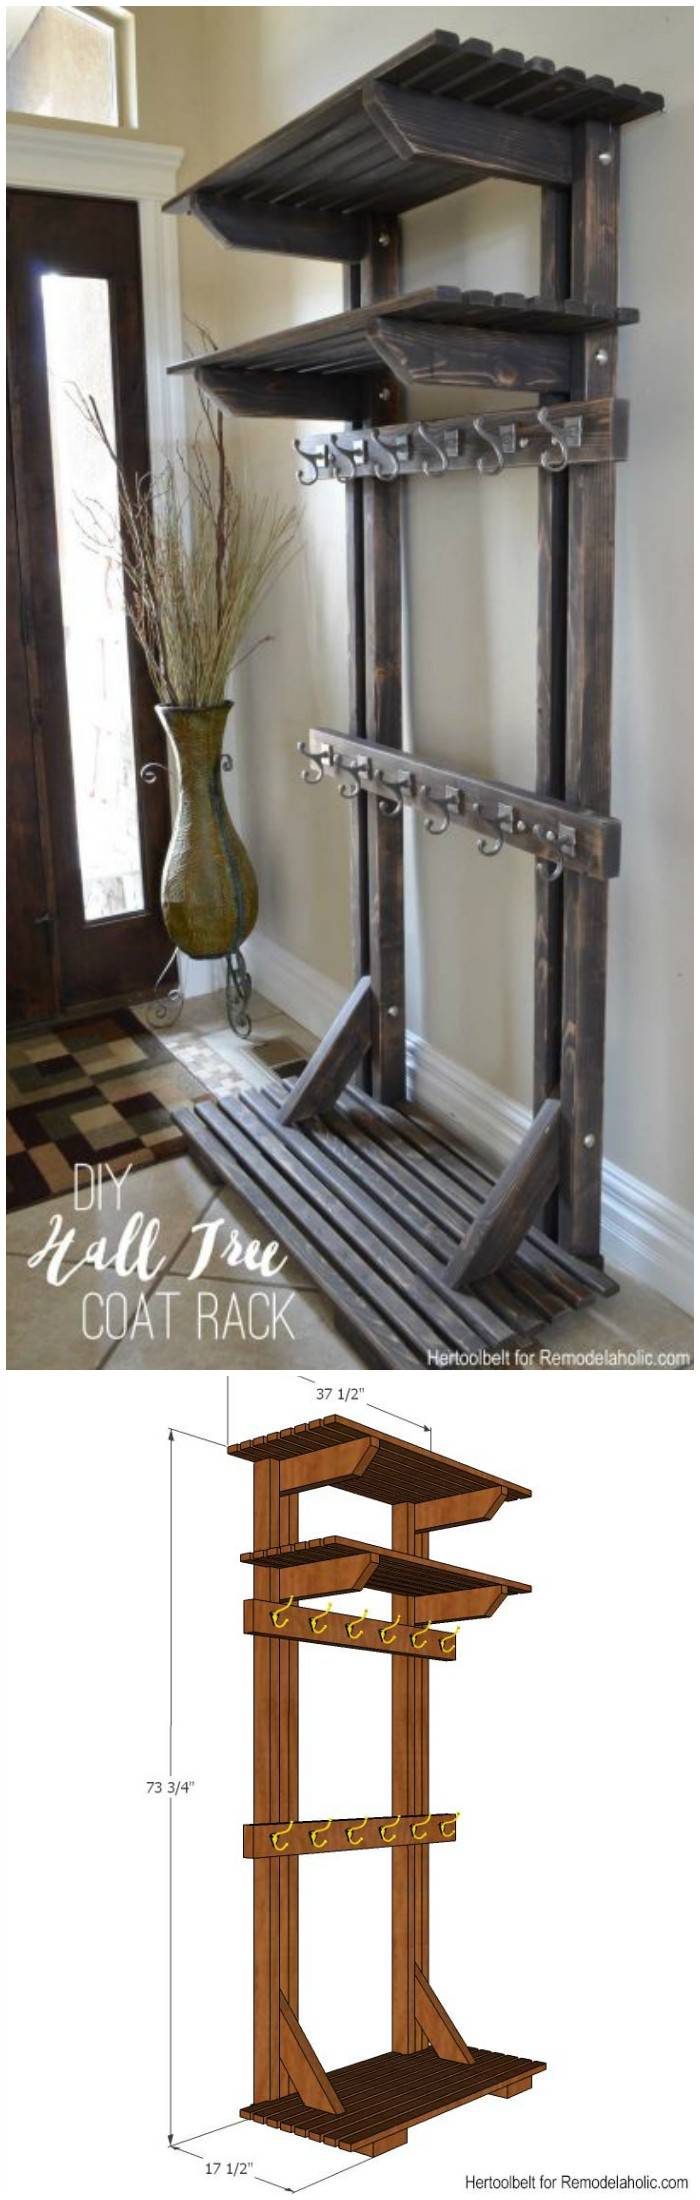 DIY Hall Tree Coat Rack